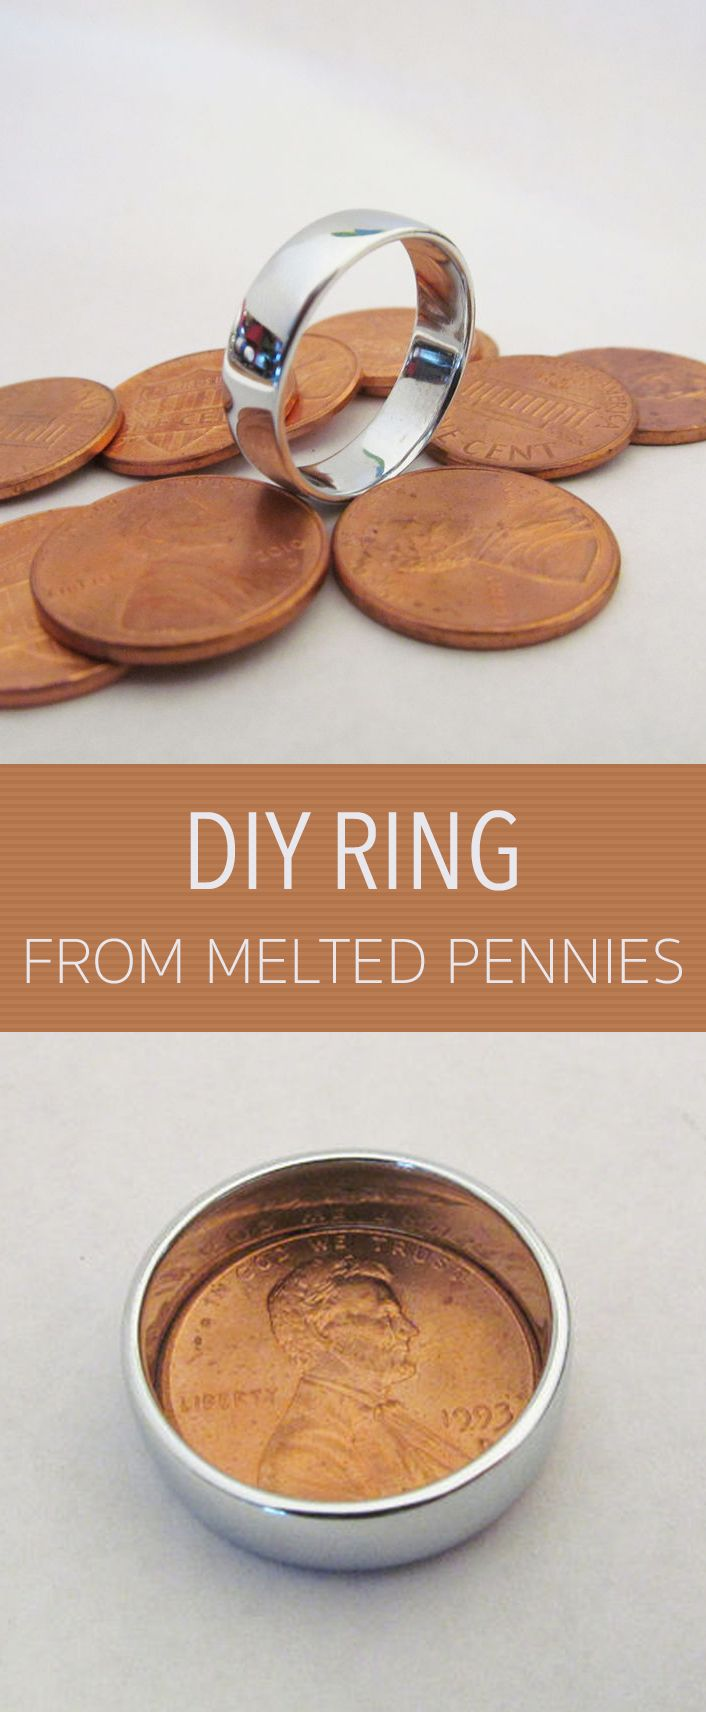 This ring is made from pennies. You can smelt the copper coating off leaving you with zinc. Pennies minted after 1983 are all made like this.